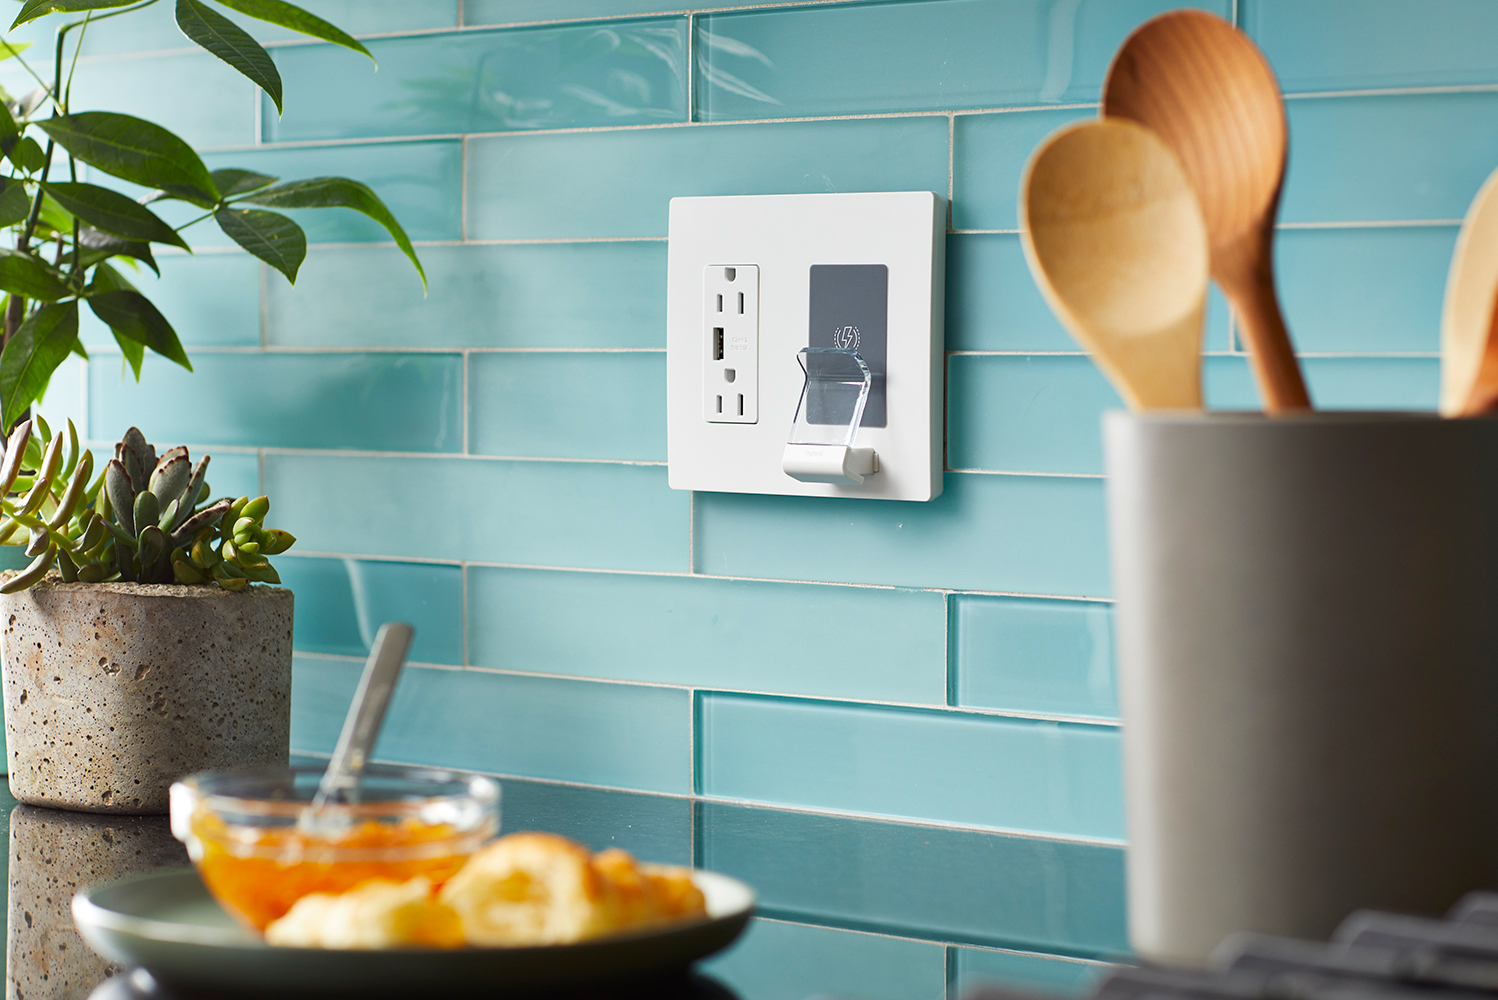 Designed to replace any standard outlet, no new electric wiring is required.